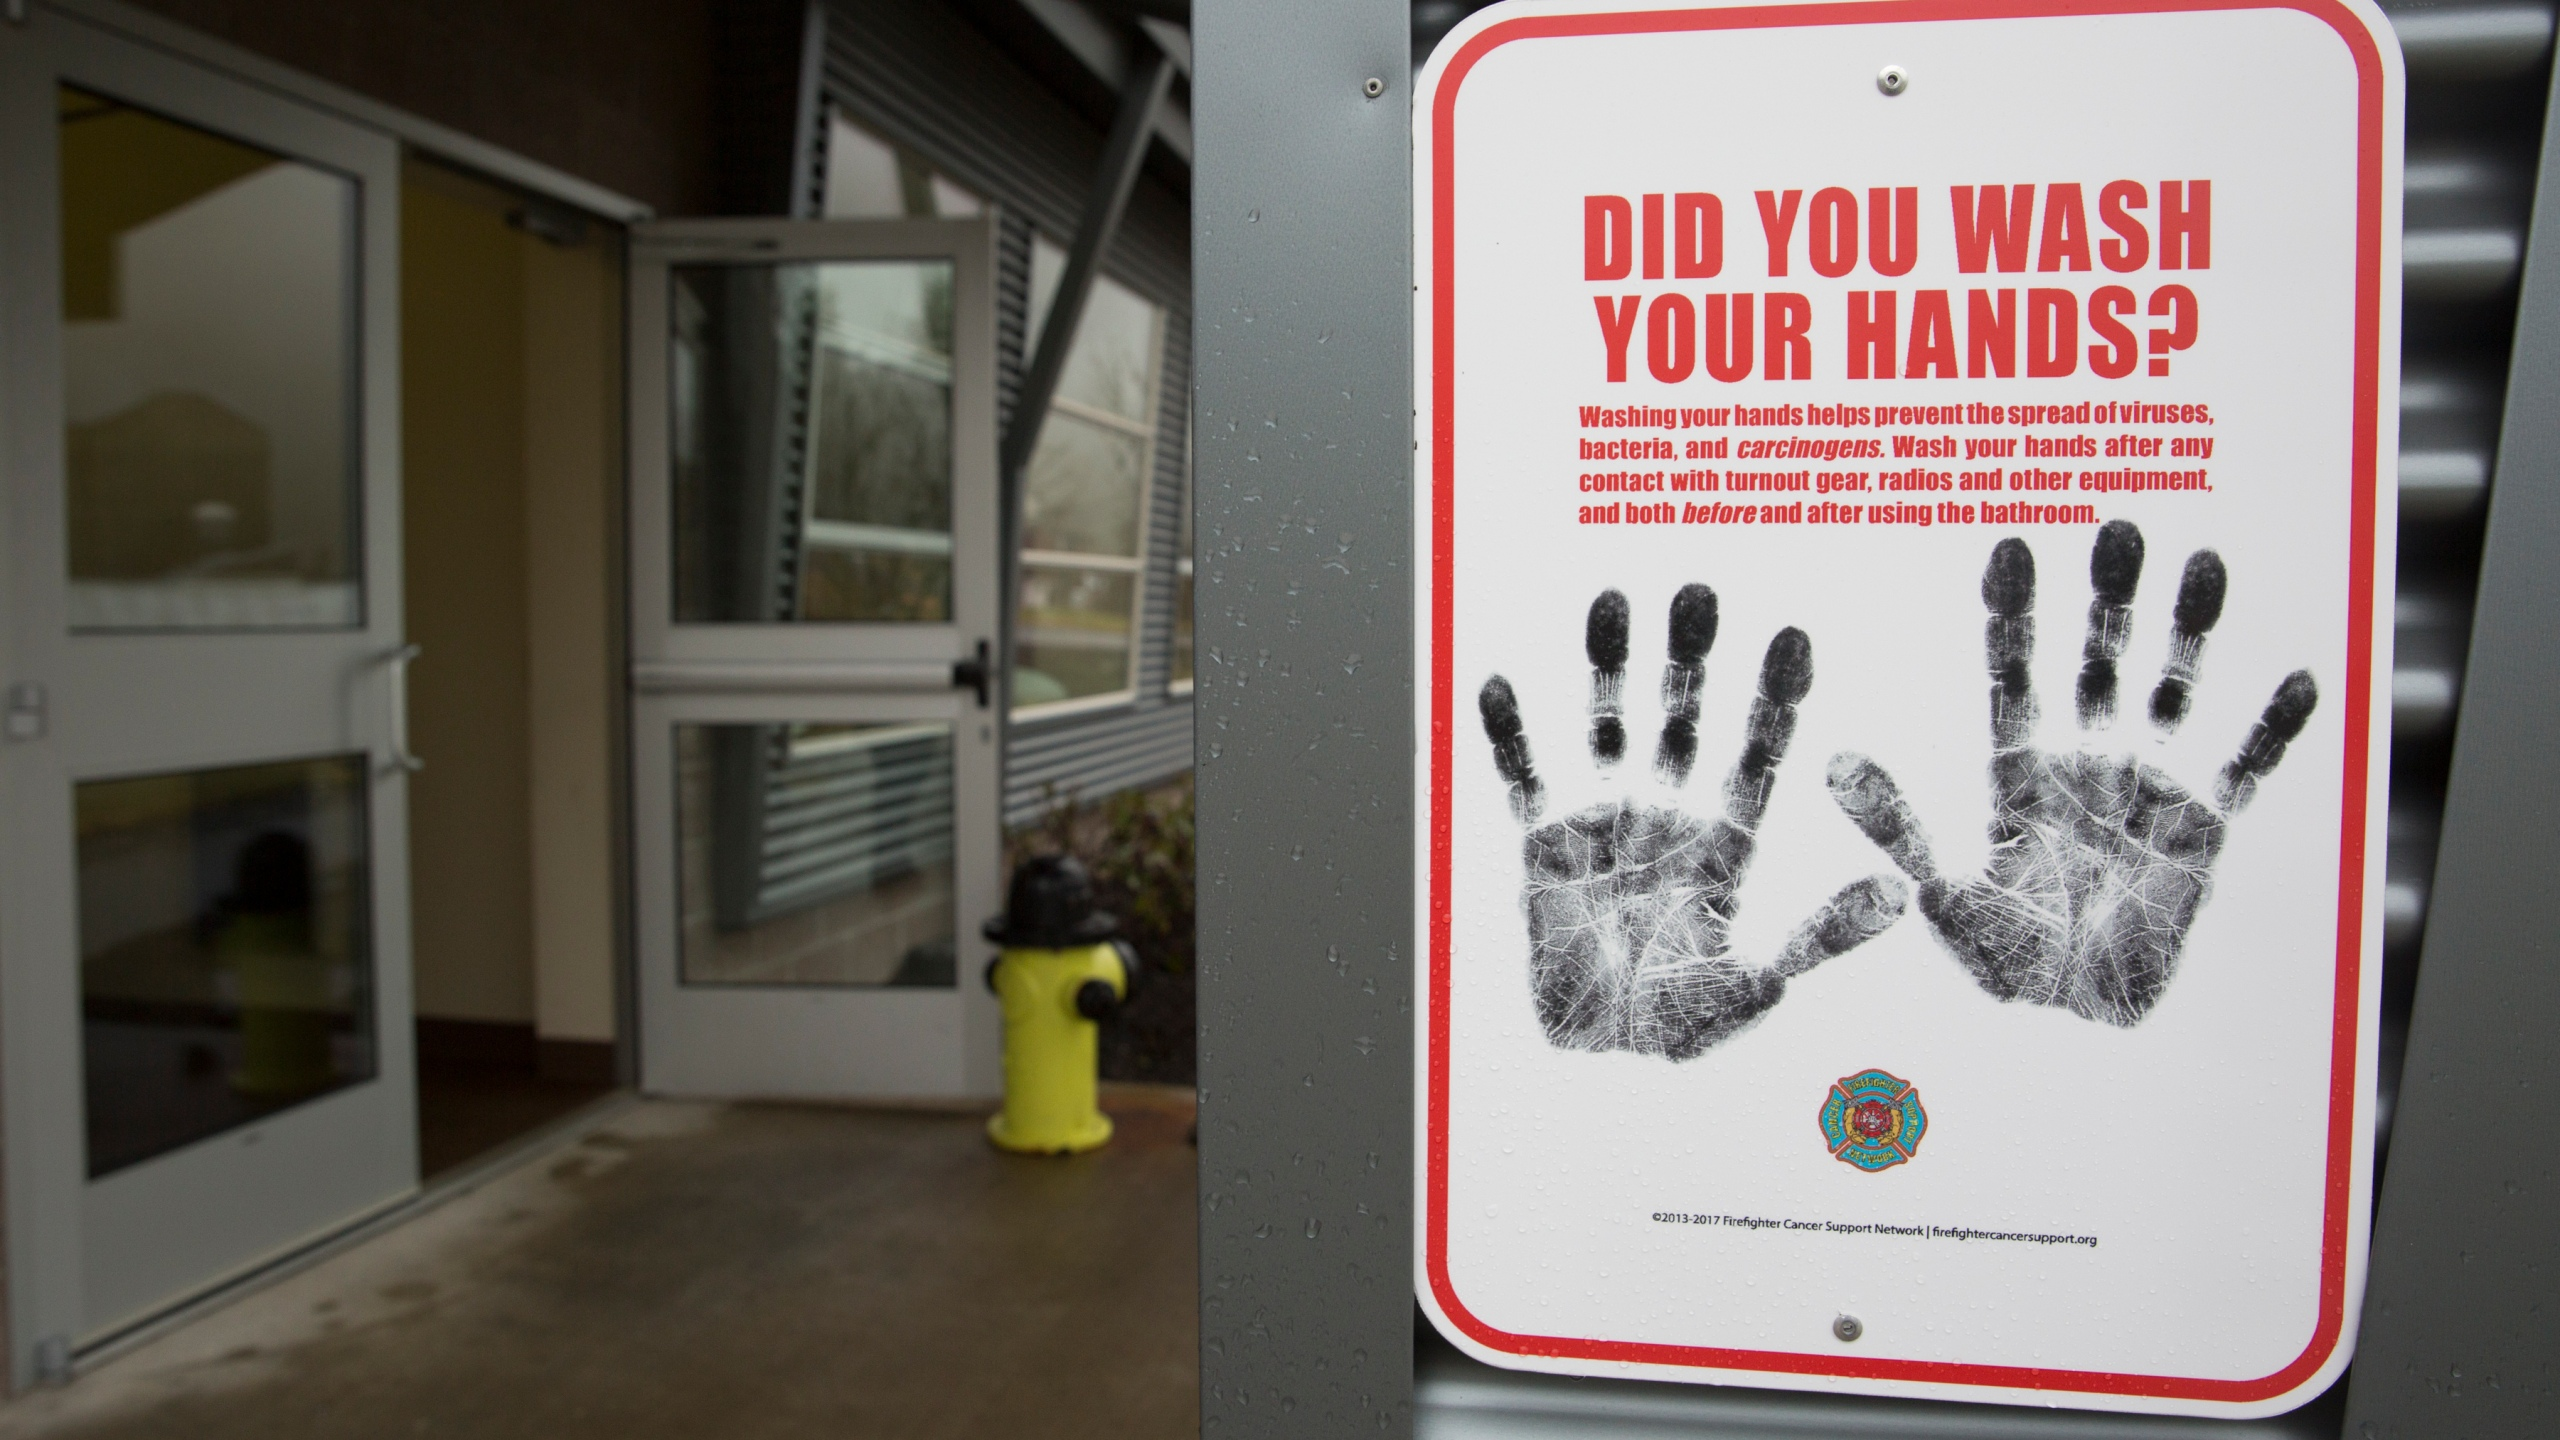 A sign reminding people to wash their hands is pictured outside a dormitory at the Washington State Patrol Fire Training Academy which has been designated as a 2019 novel coronavirus quarantine site for travelers from Hubei Province, China. (Photo by JASON REDMOND/AFP via Getty Images)